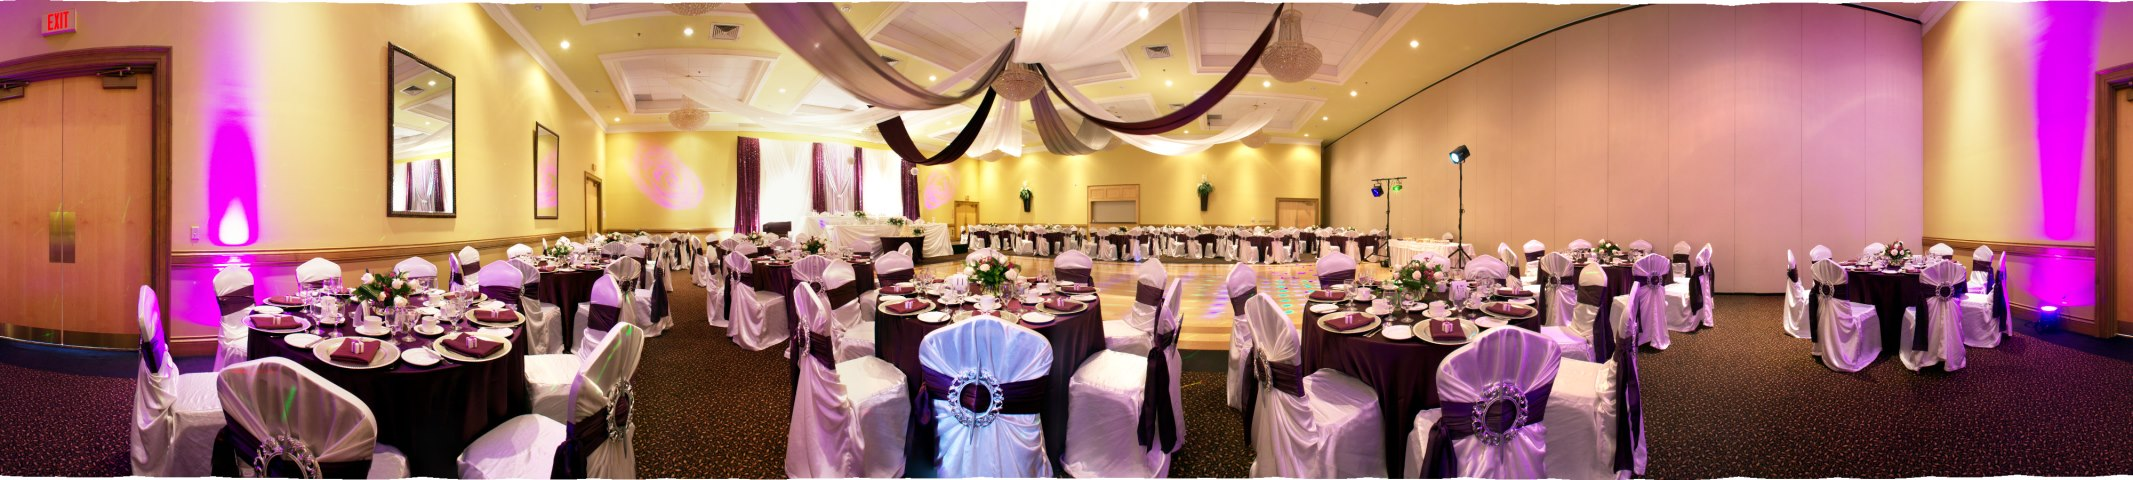 purple wedding decorations in hall